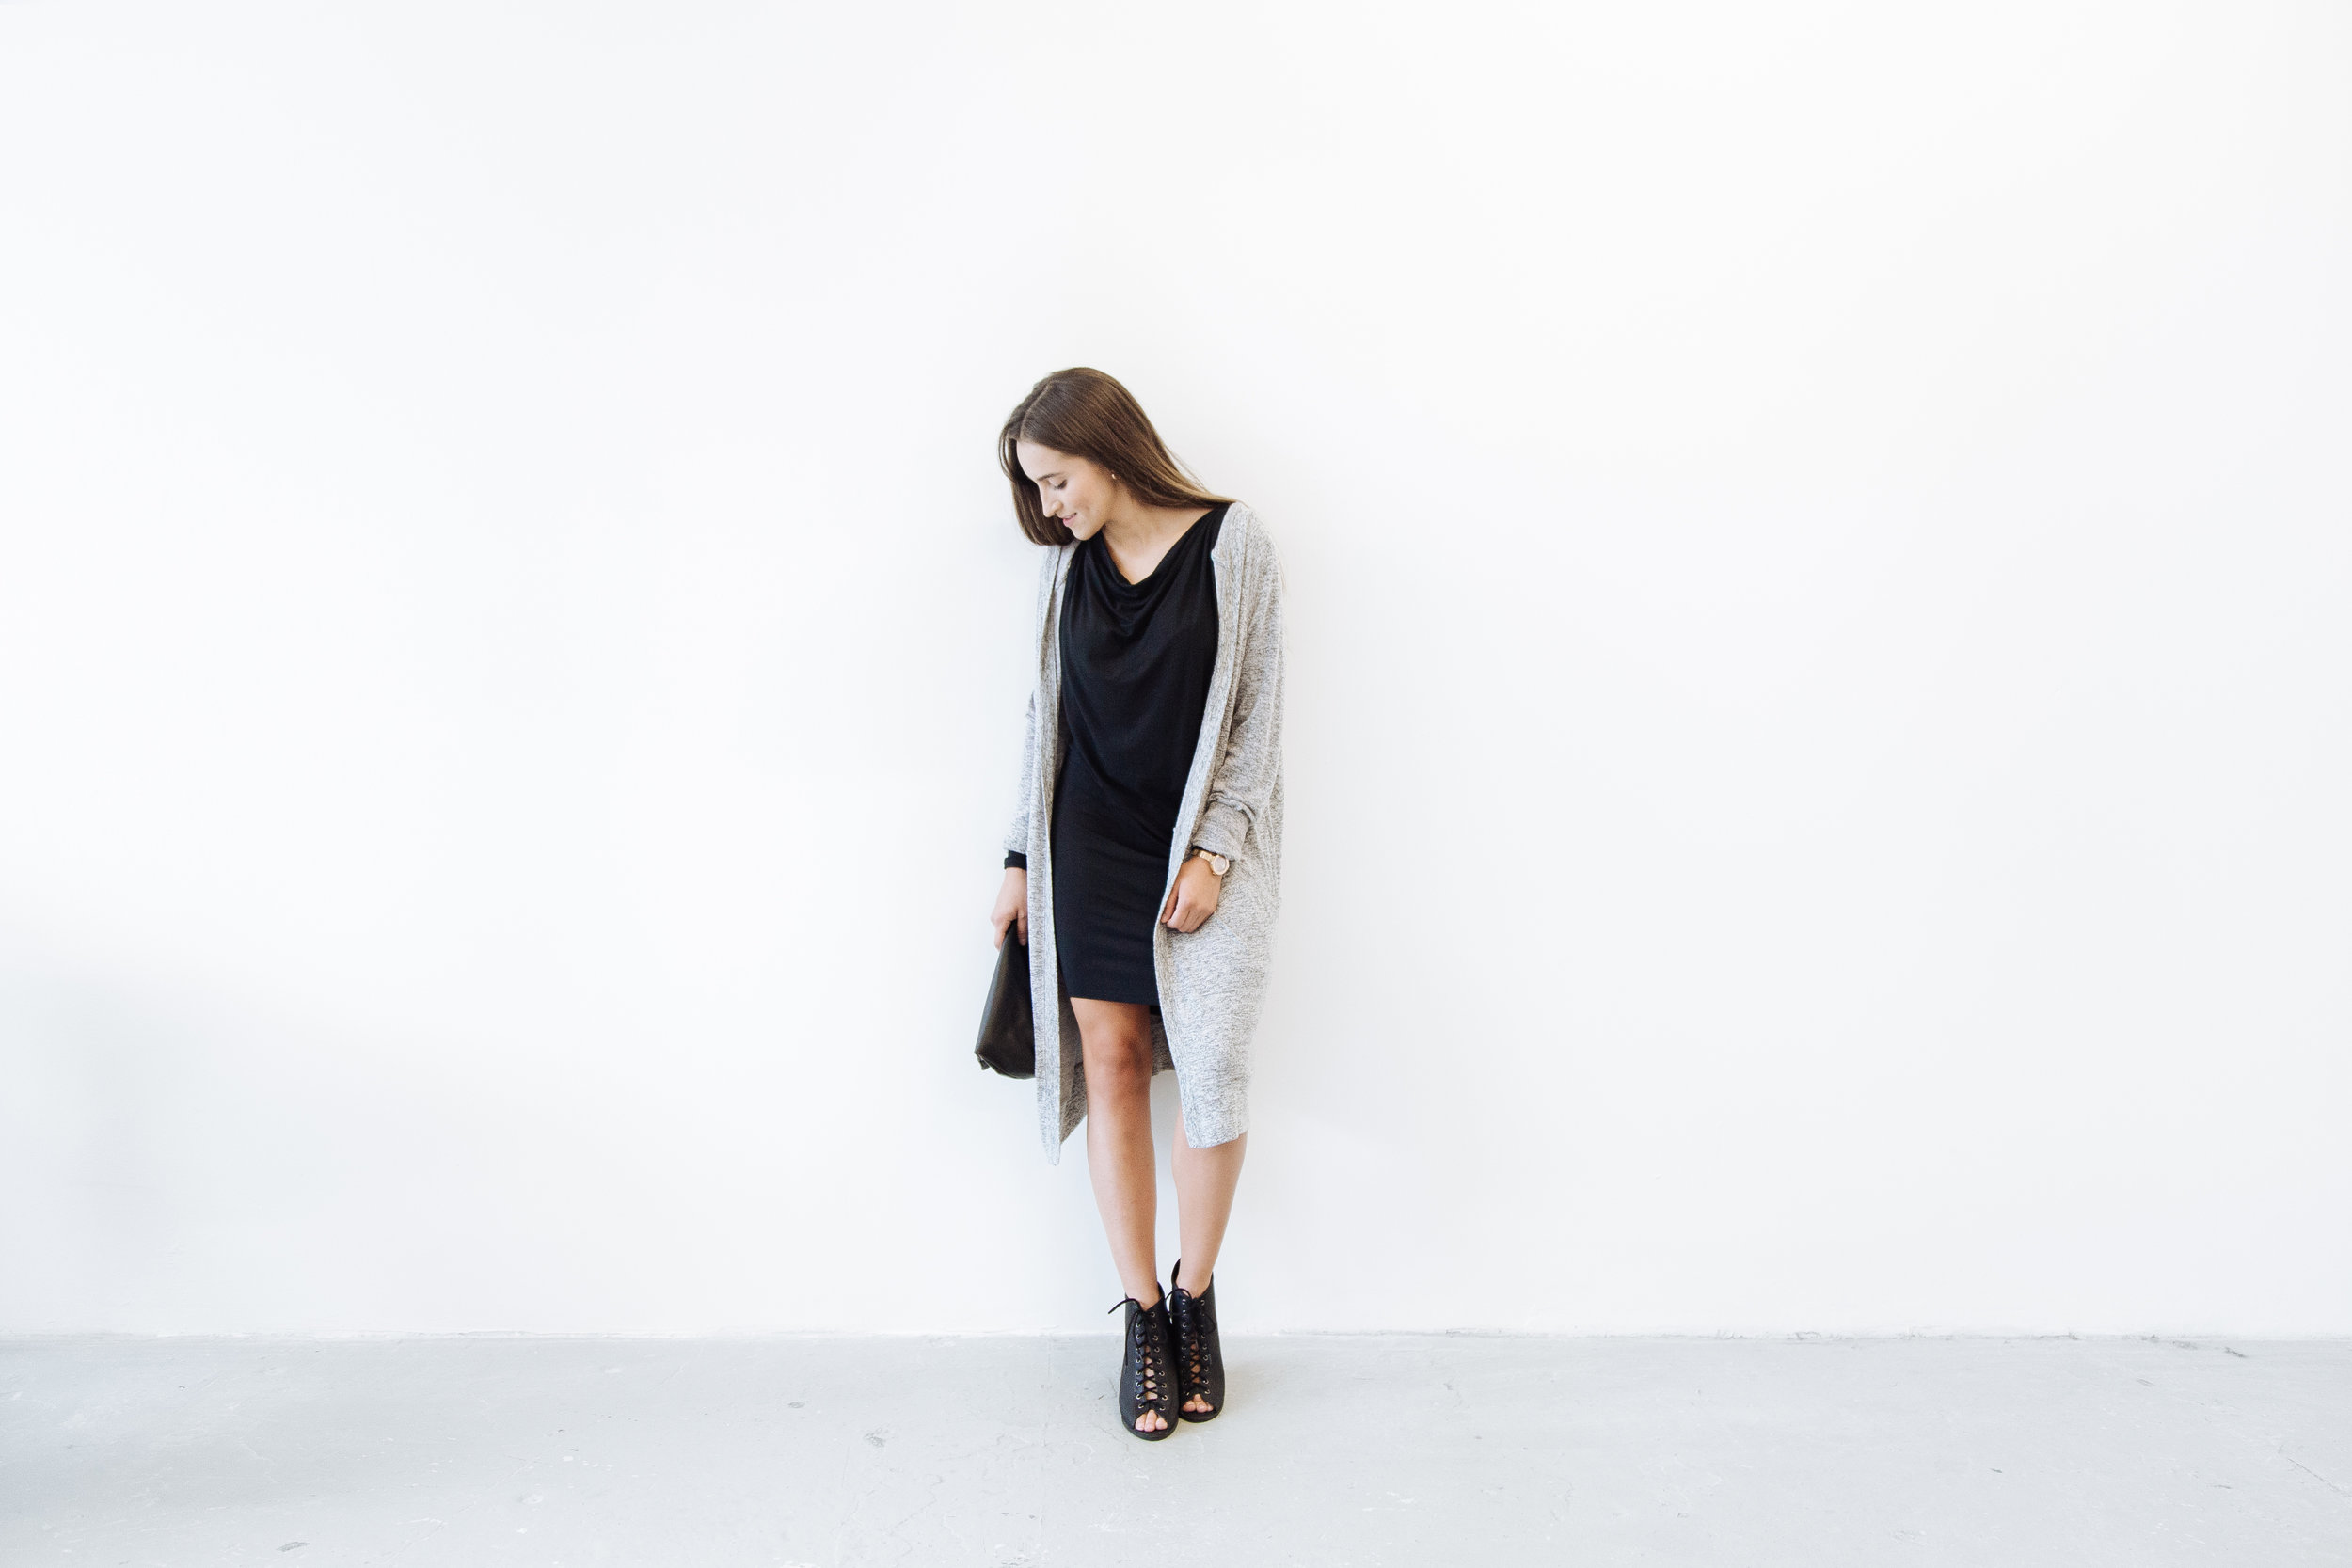 REVOLVE DRESS | $160 - Elevate your wardrobe with this 6-in-1 dress from Encircled. Ethically made in Canada from sustainable fabrics, you can rely on this wardrobe staple 7 days a week.